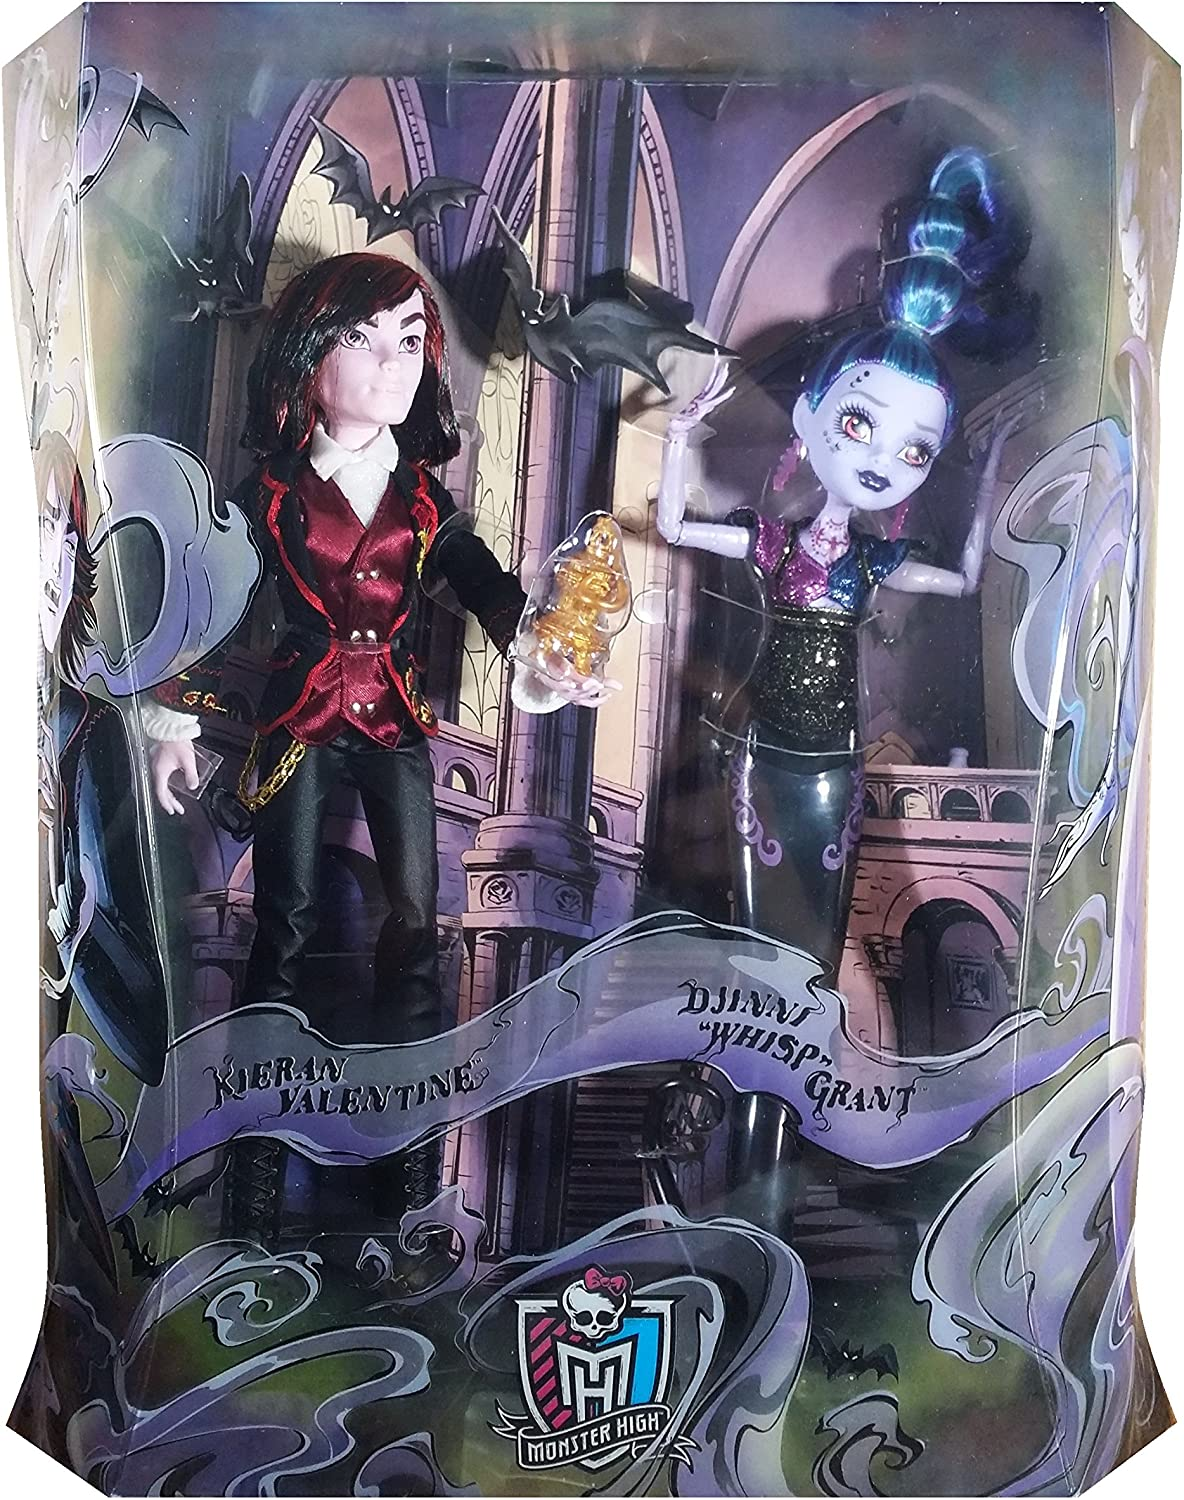 Mattel Monster High Kieran Valentine & Djinni Whisp Grant SDCC ...